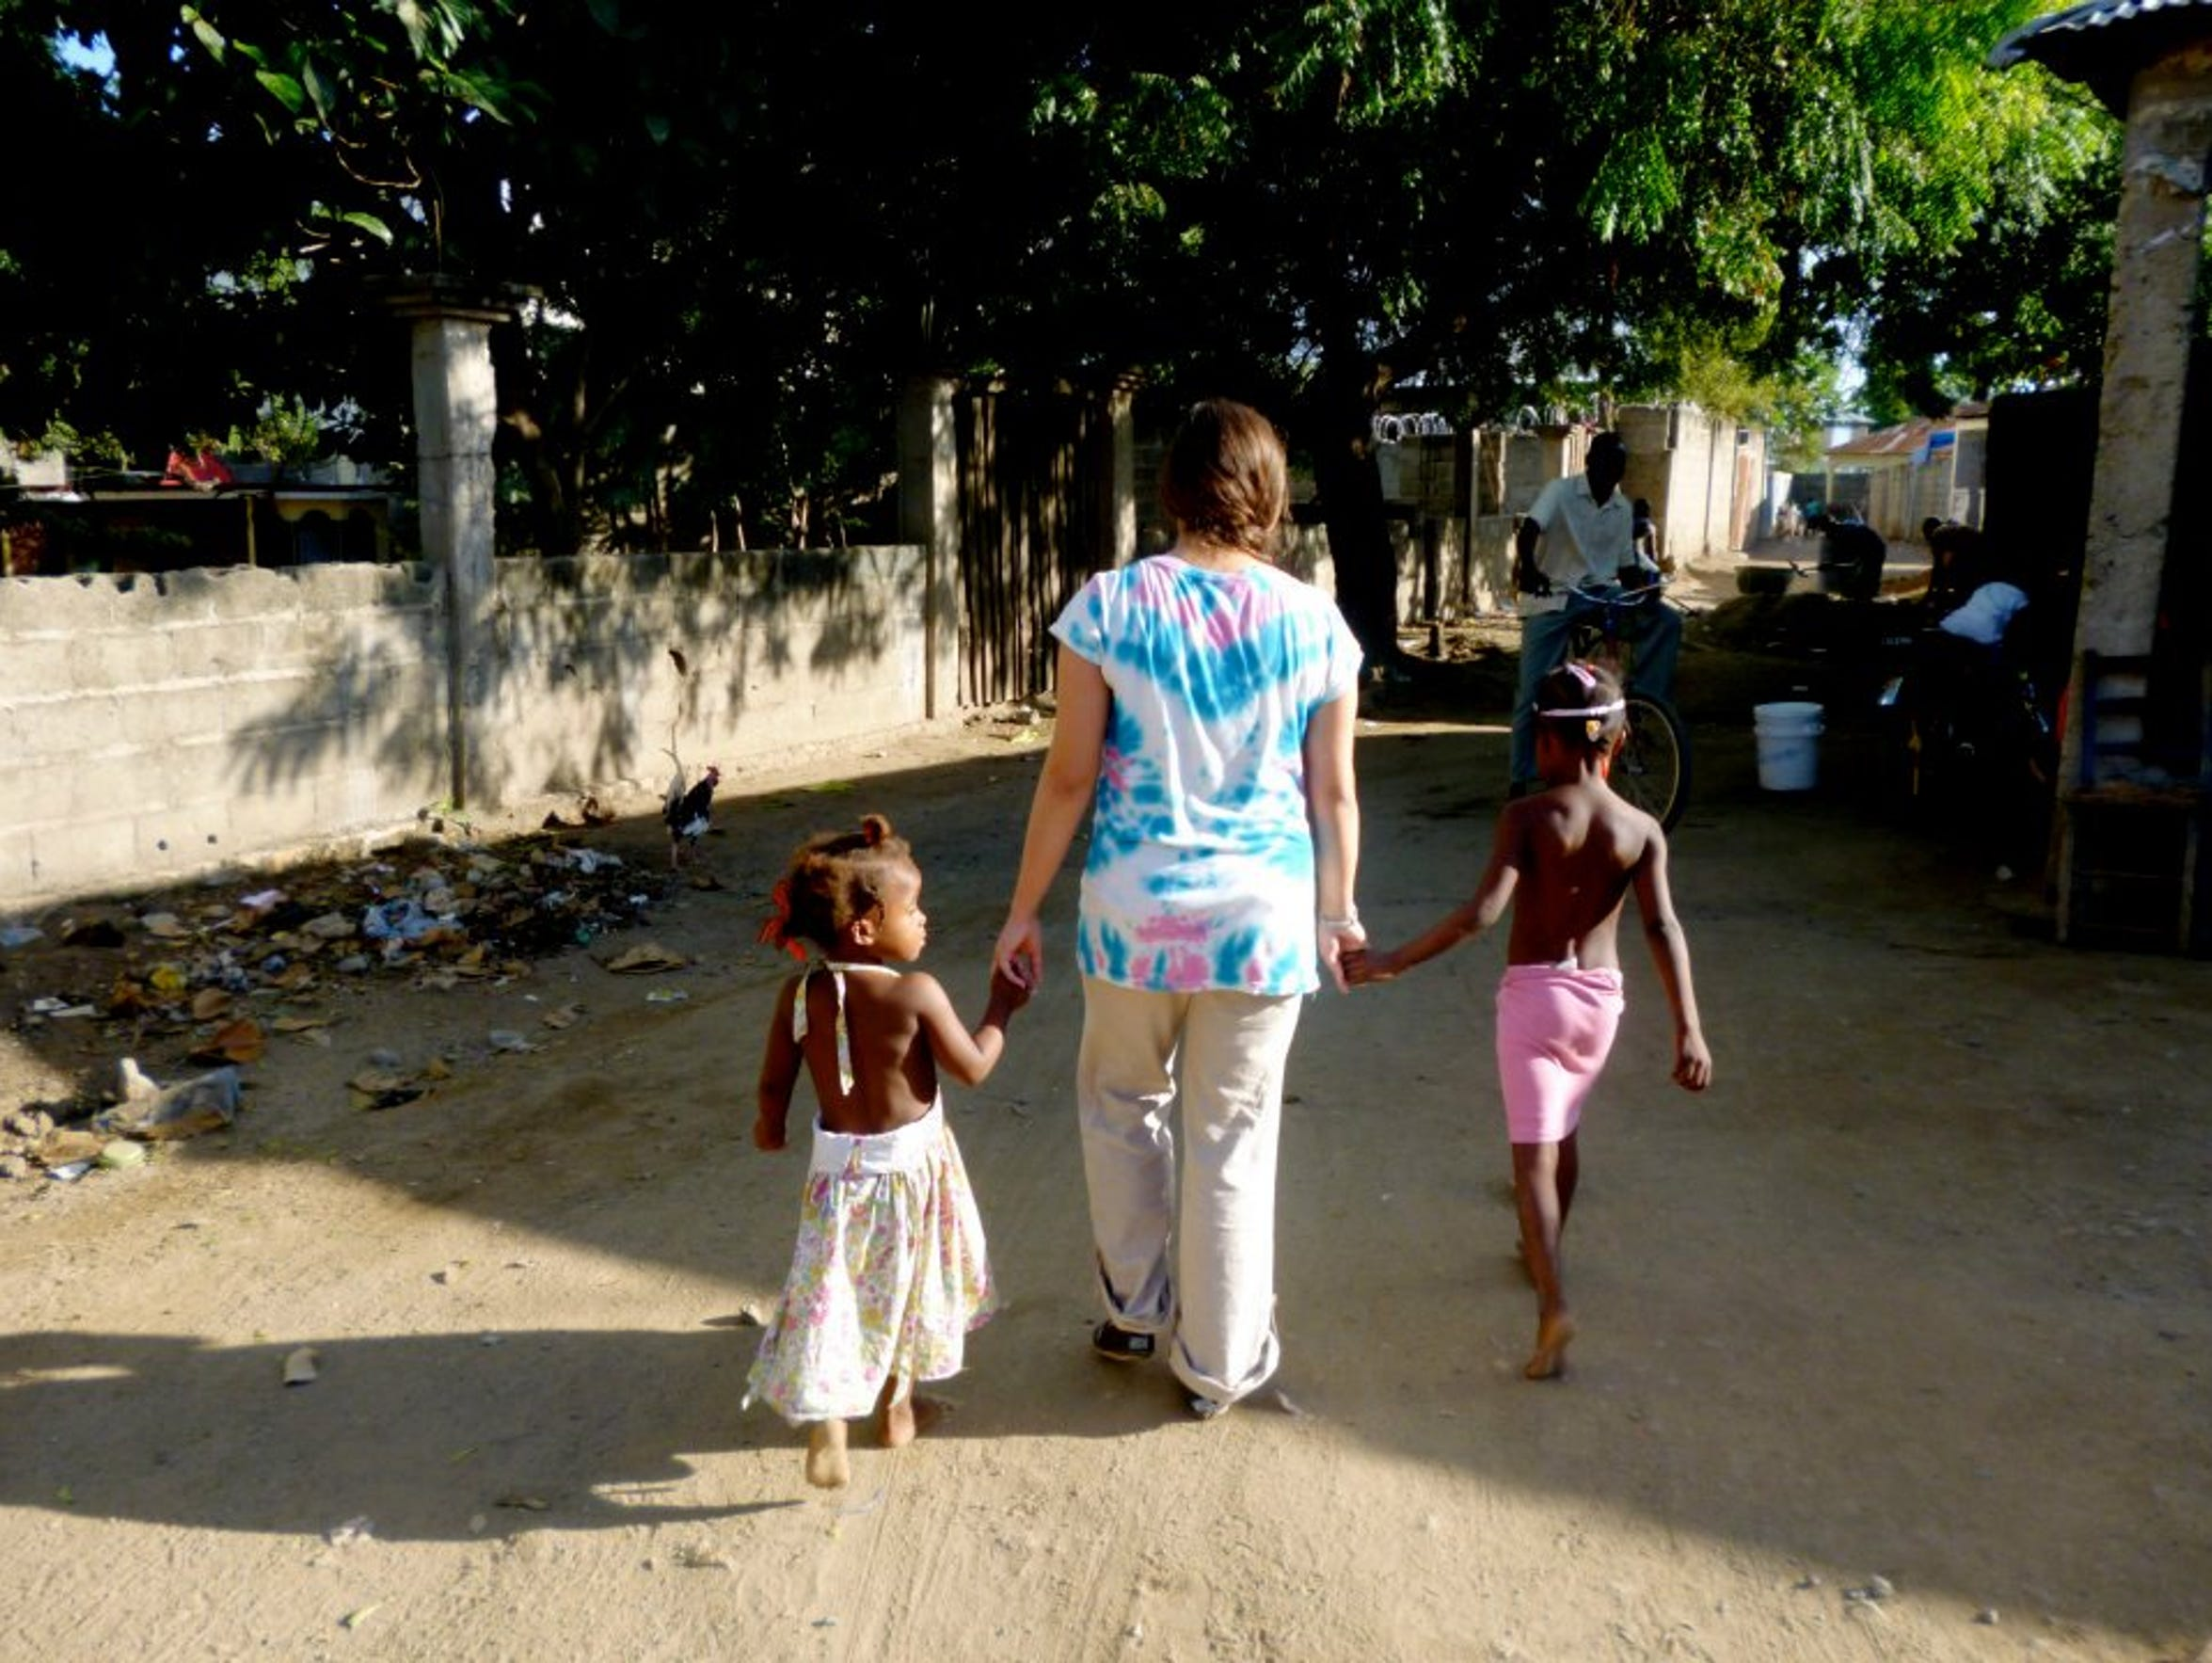 A look back at one of Sarah's first missionary trips